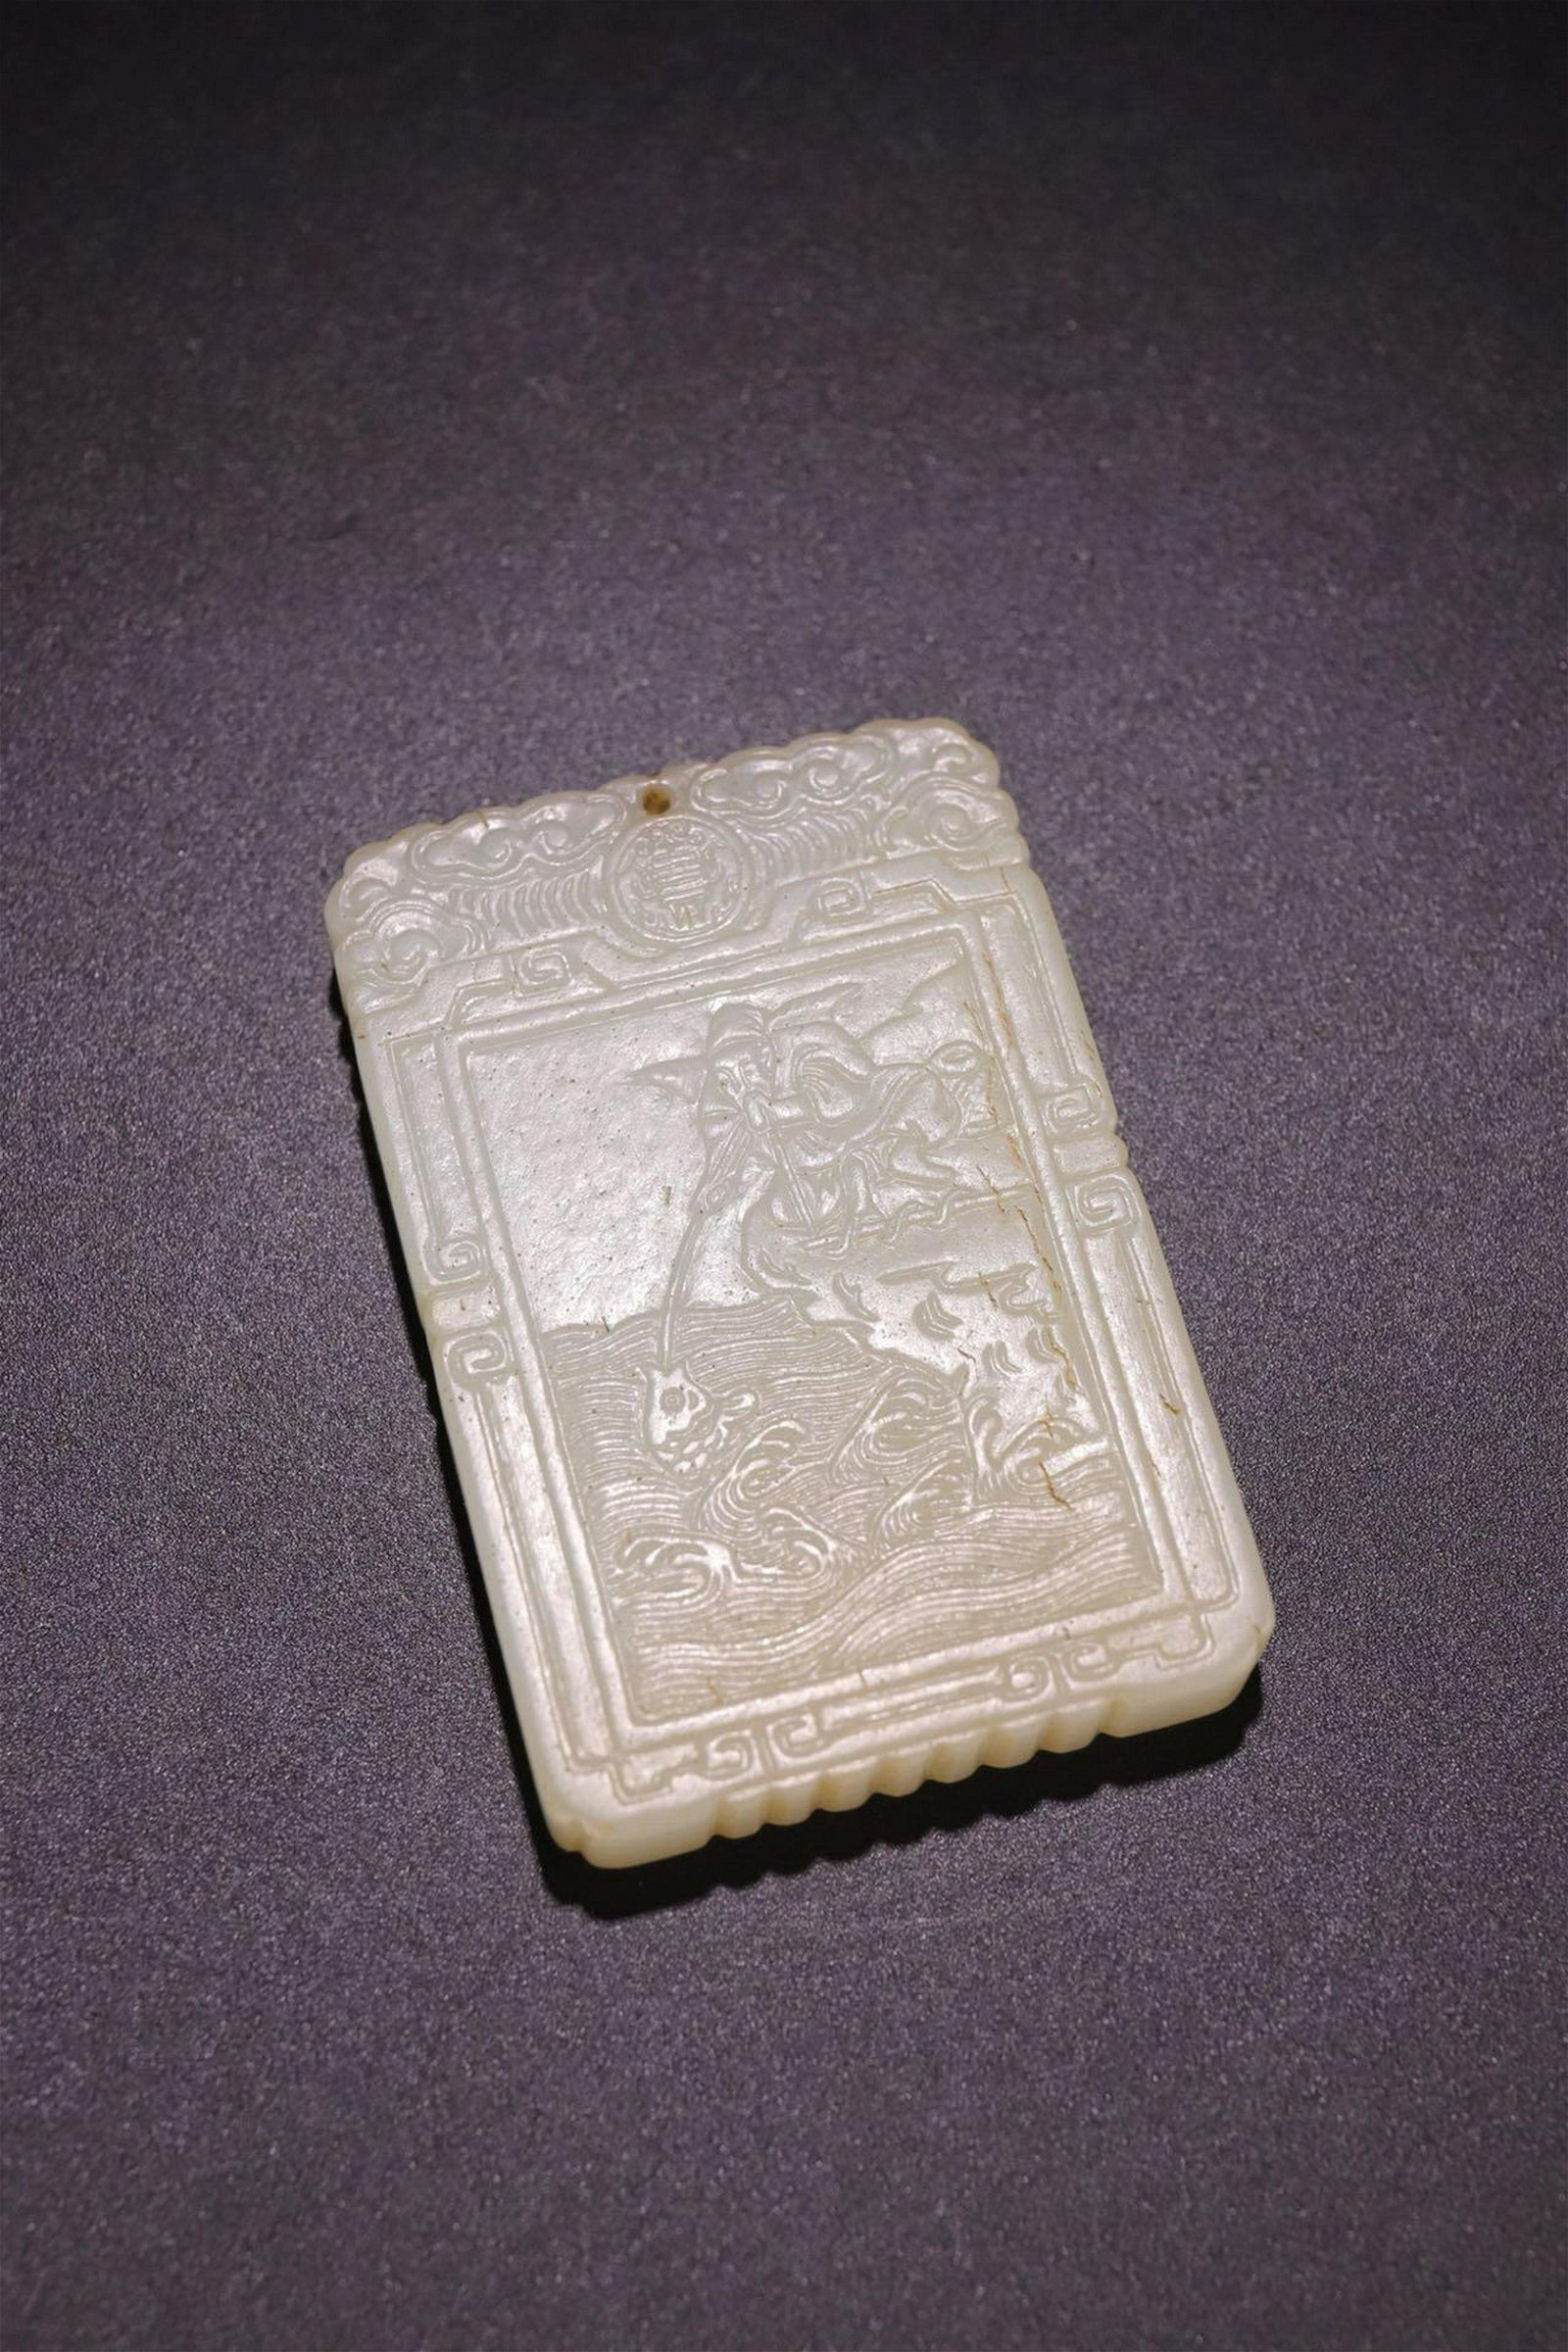 A HETIAN JADE CHARACTER STORY TABLET